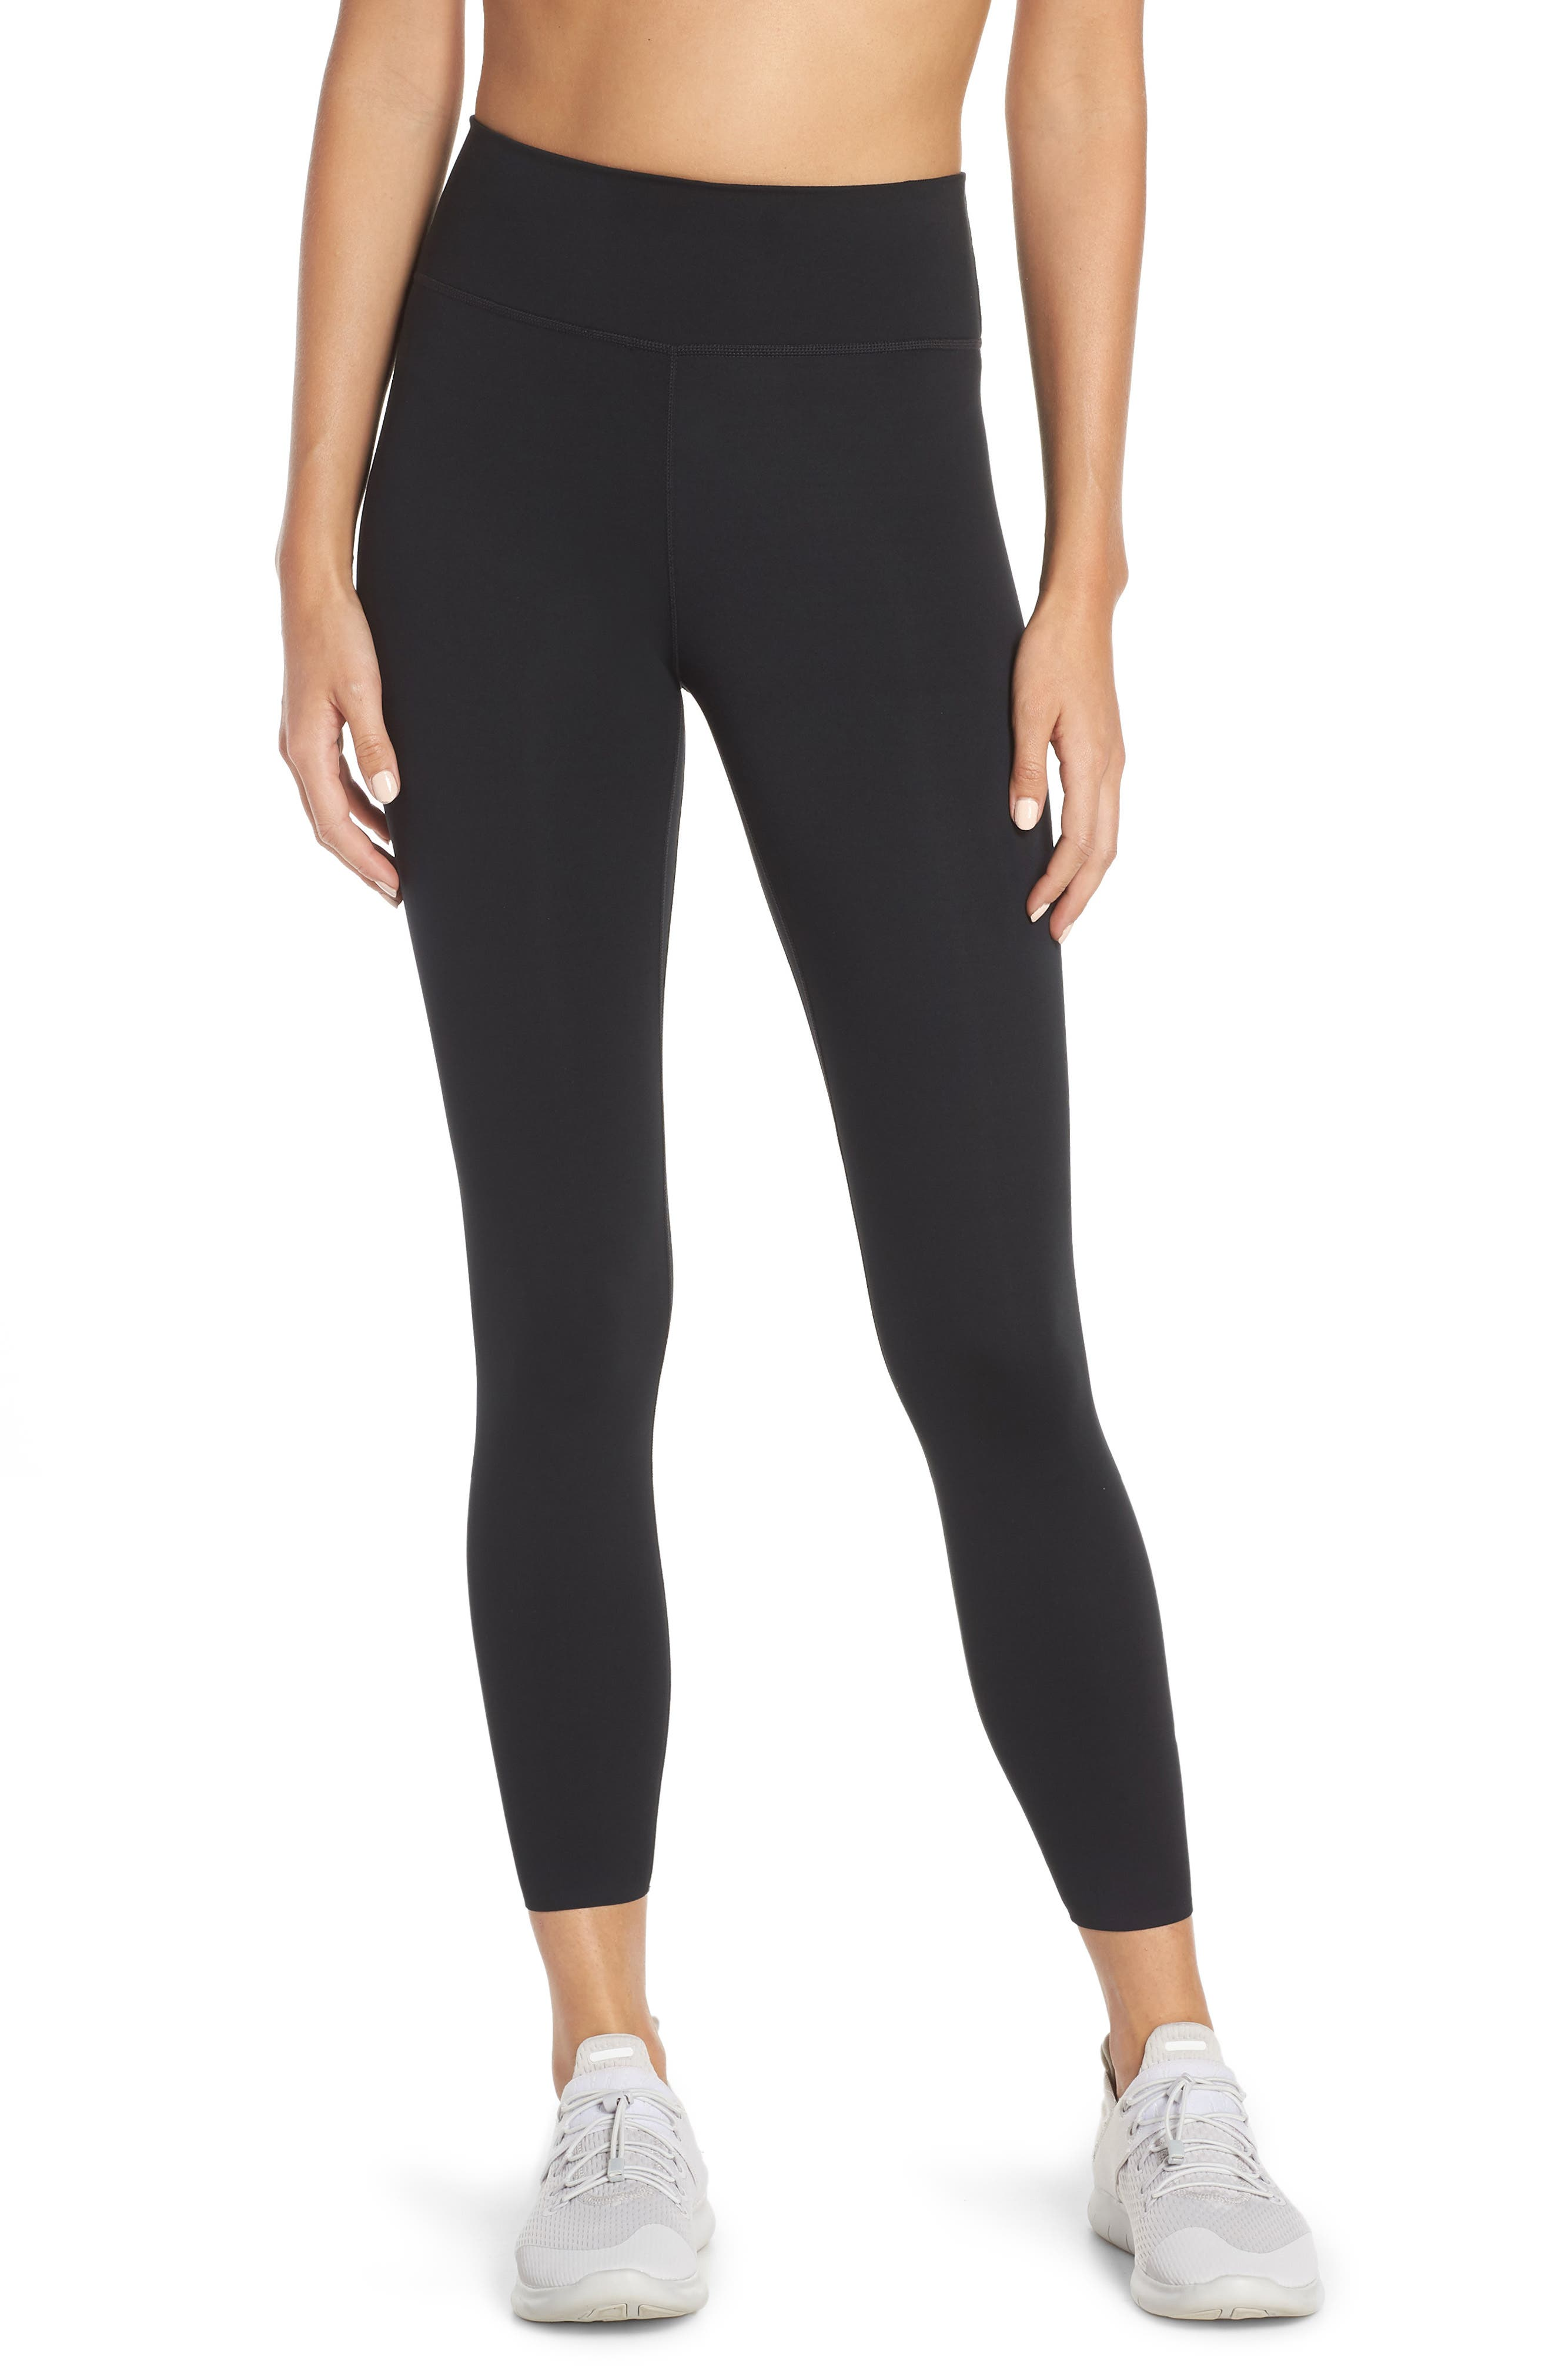 NIKE, One Lux Ankle Tights, Main thumbnail 1, color, BLACK/ CLEAR